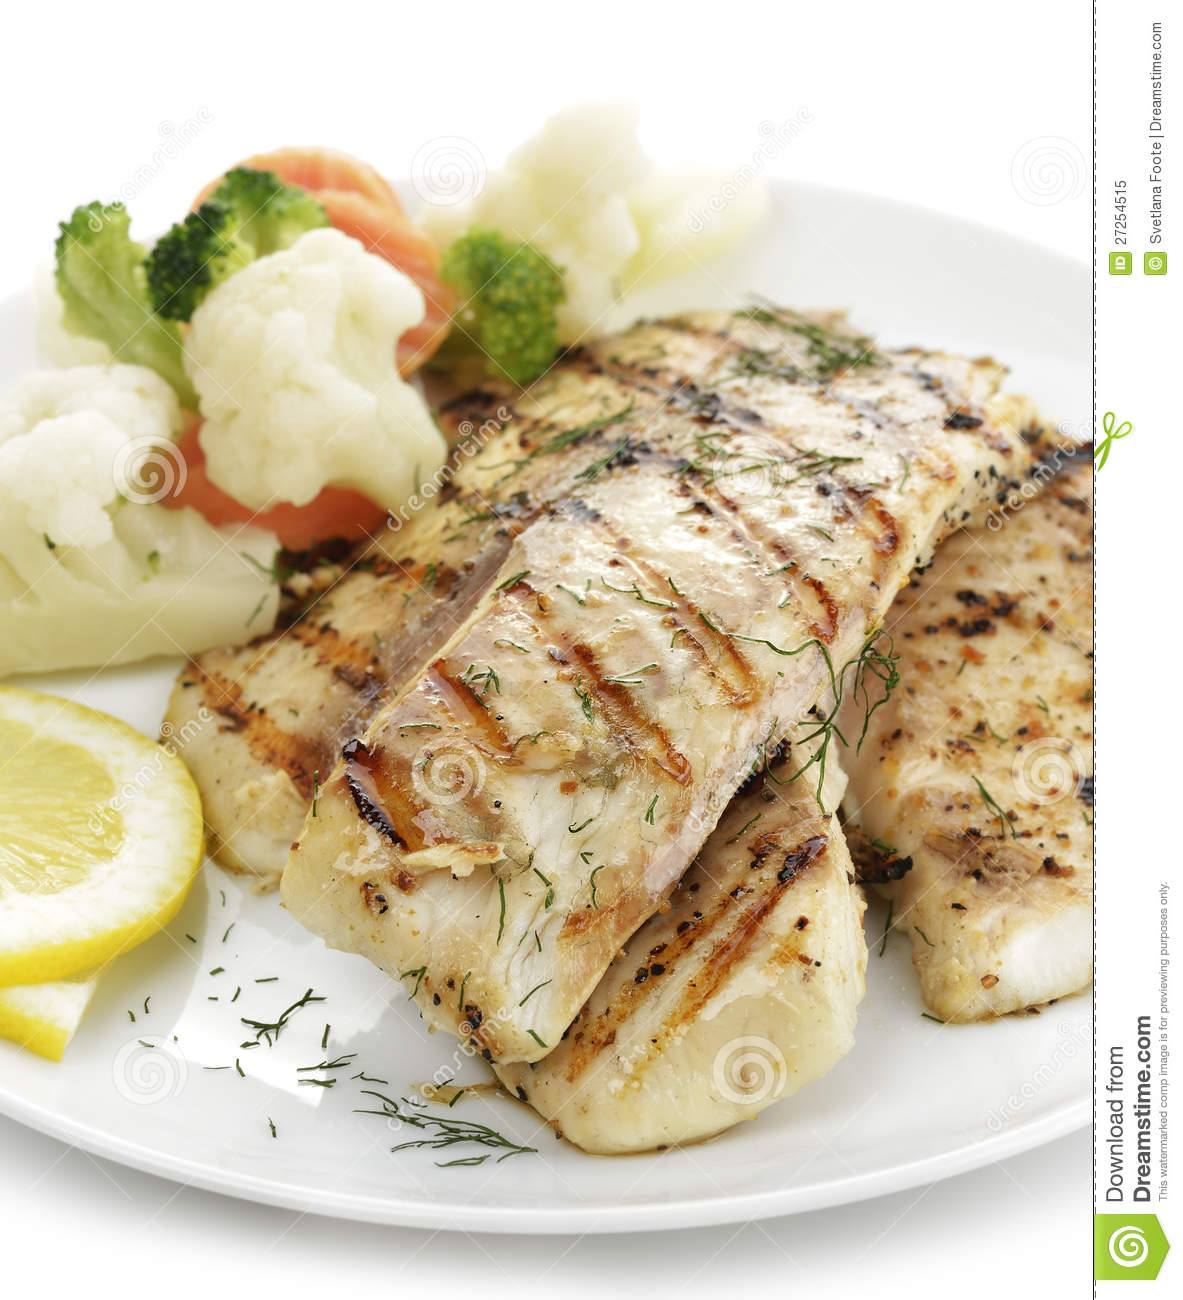 ... Grilled Whole Fish , Grilled Steak , Fried Fish Fillet , Grilled